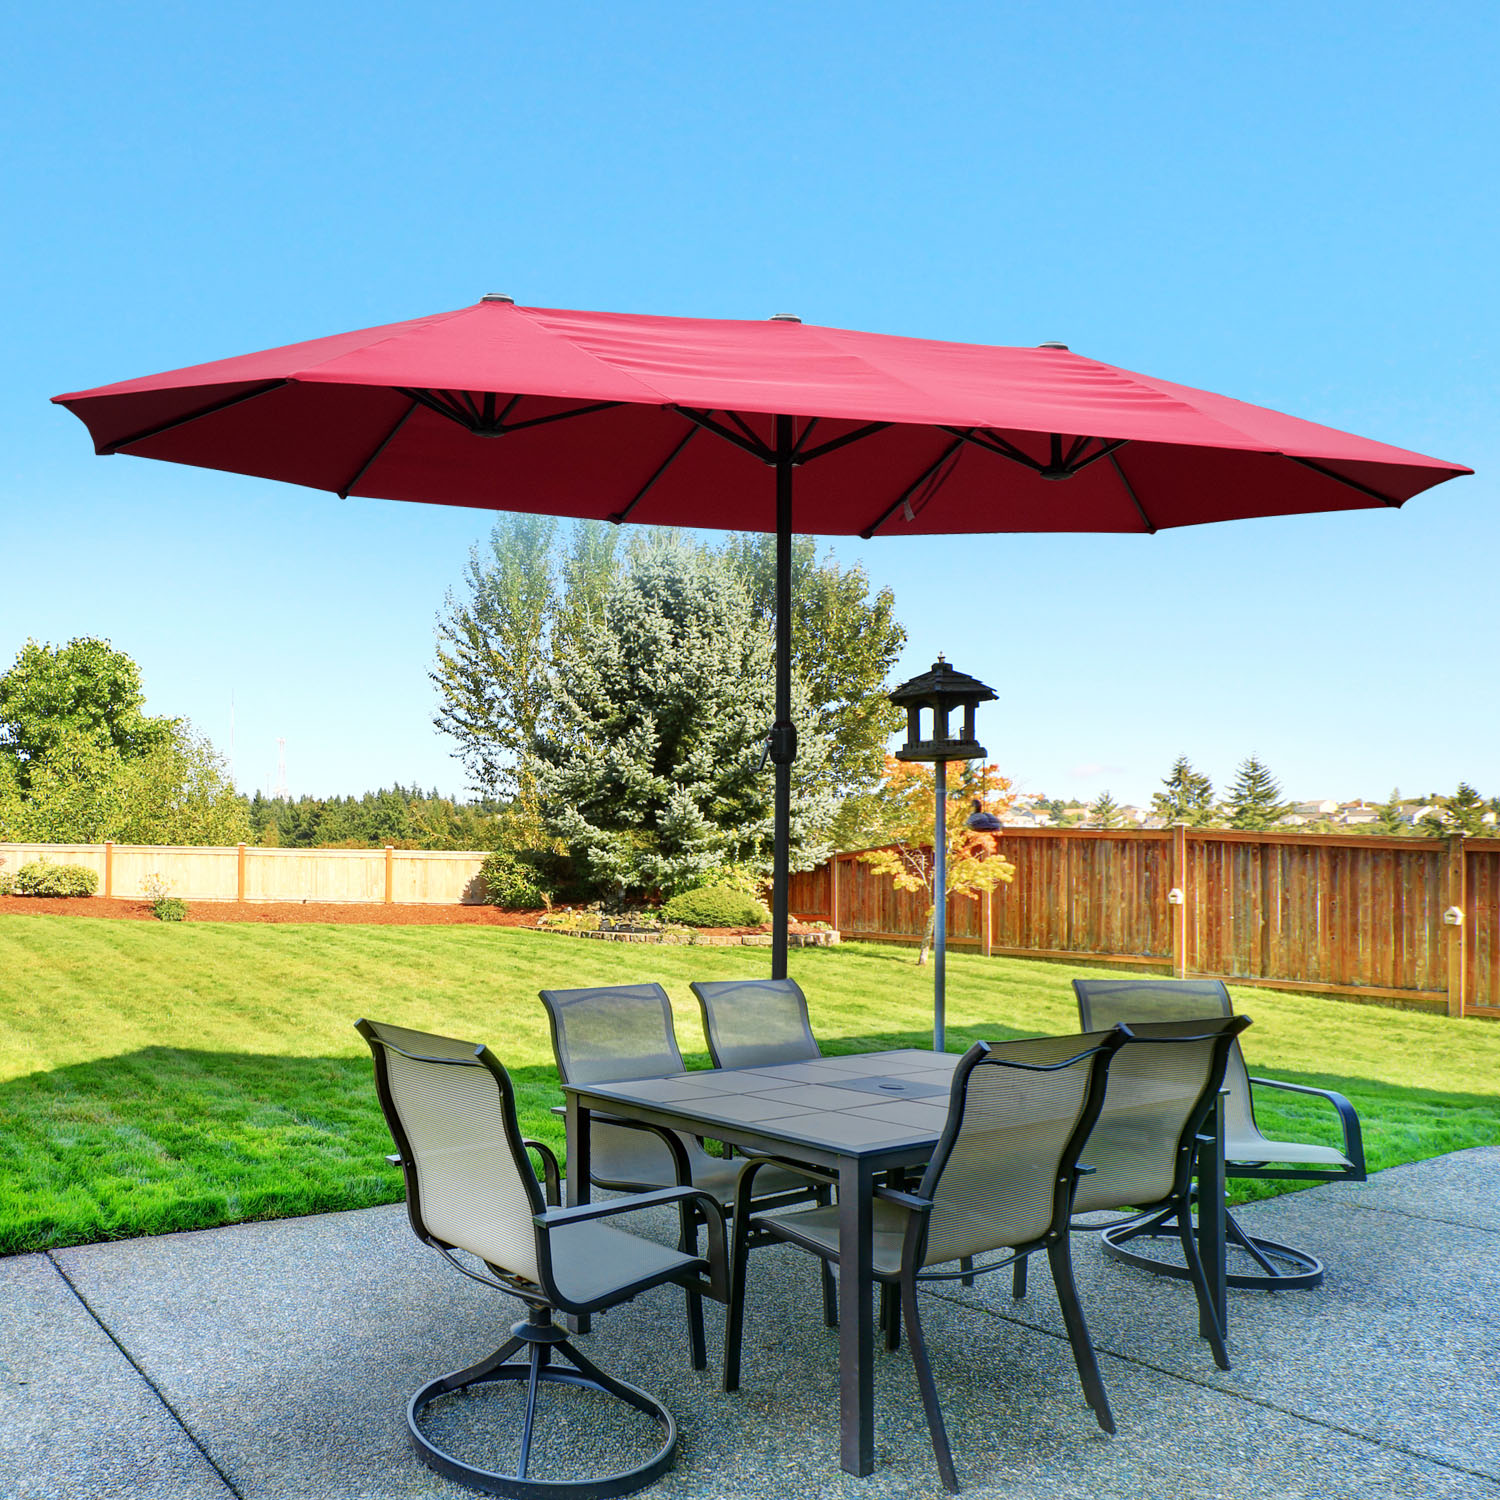 Outdoor Shade Umbrella 15 39 Double Sided Patio Umbrella Twin Sun Canopy Market